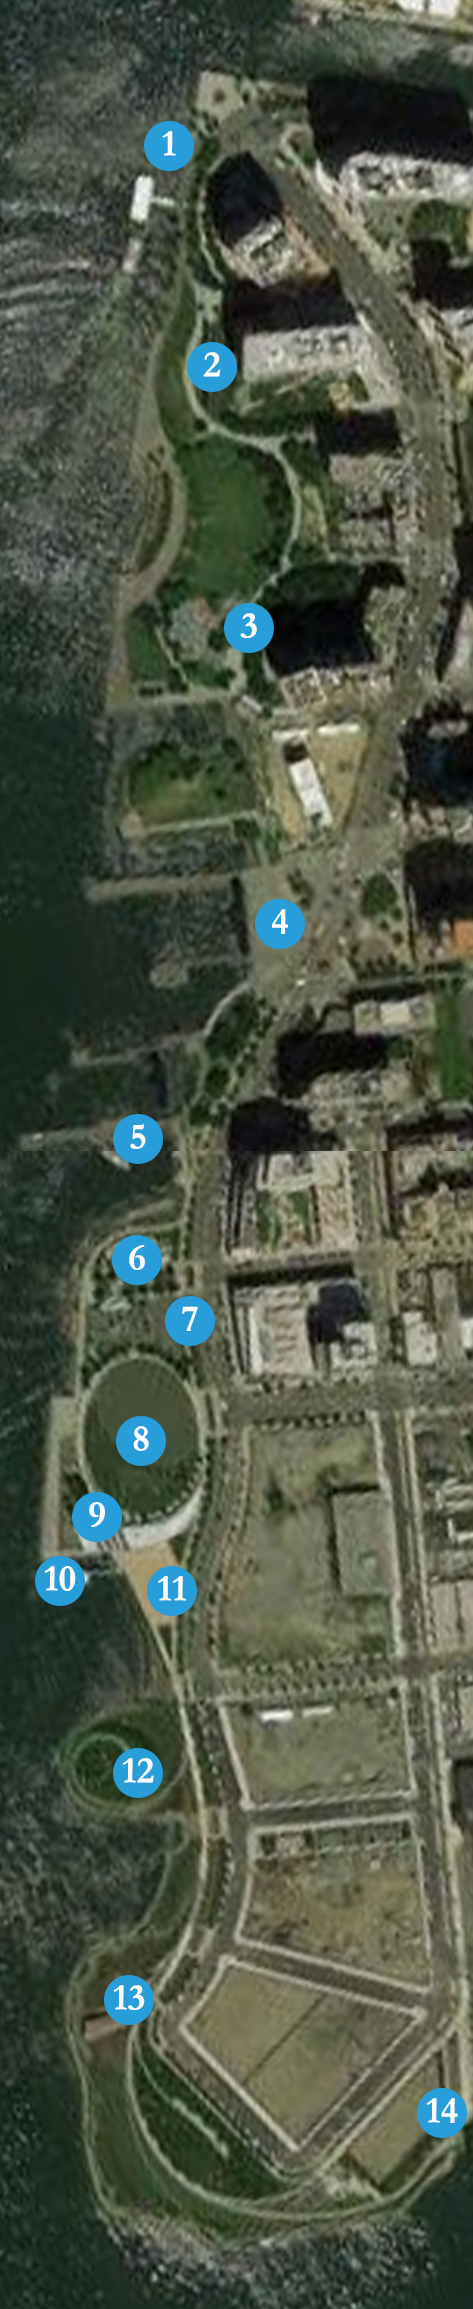 Park Aerial View with numbers.png